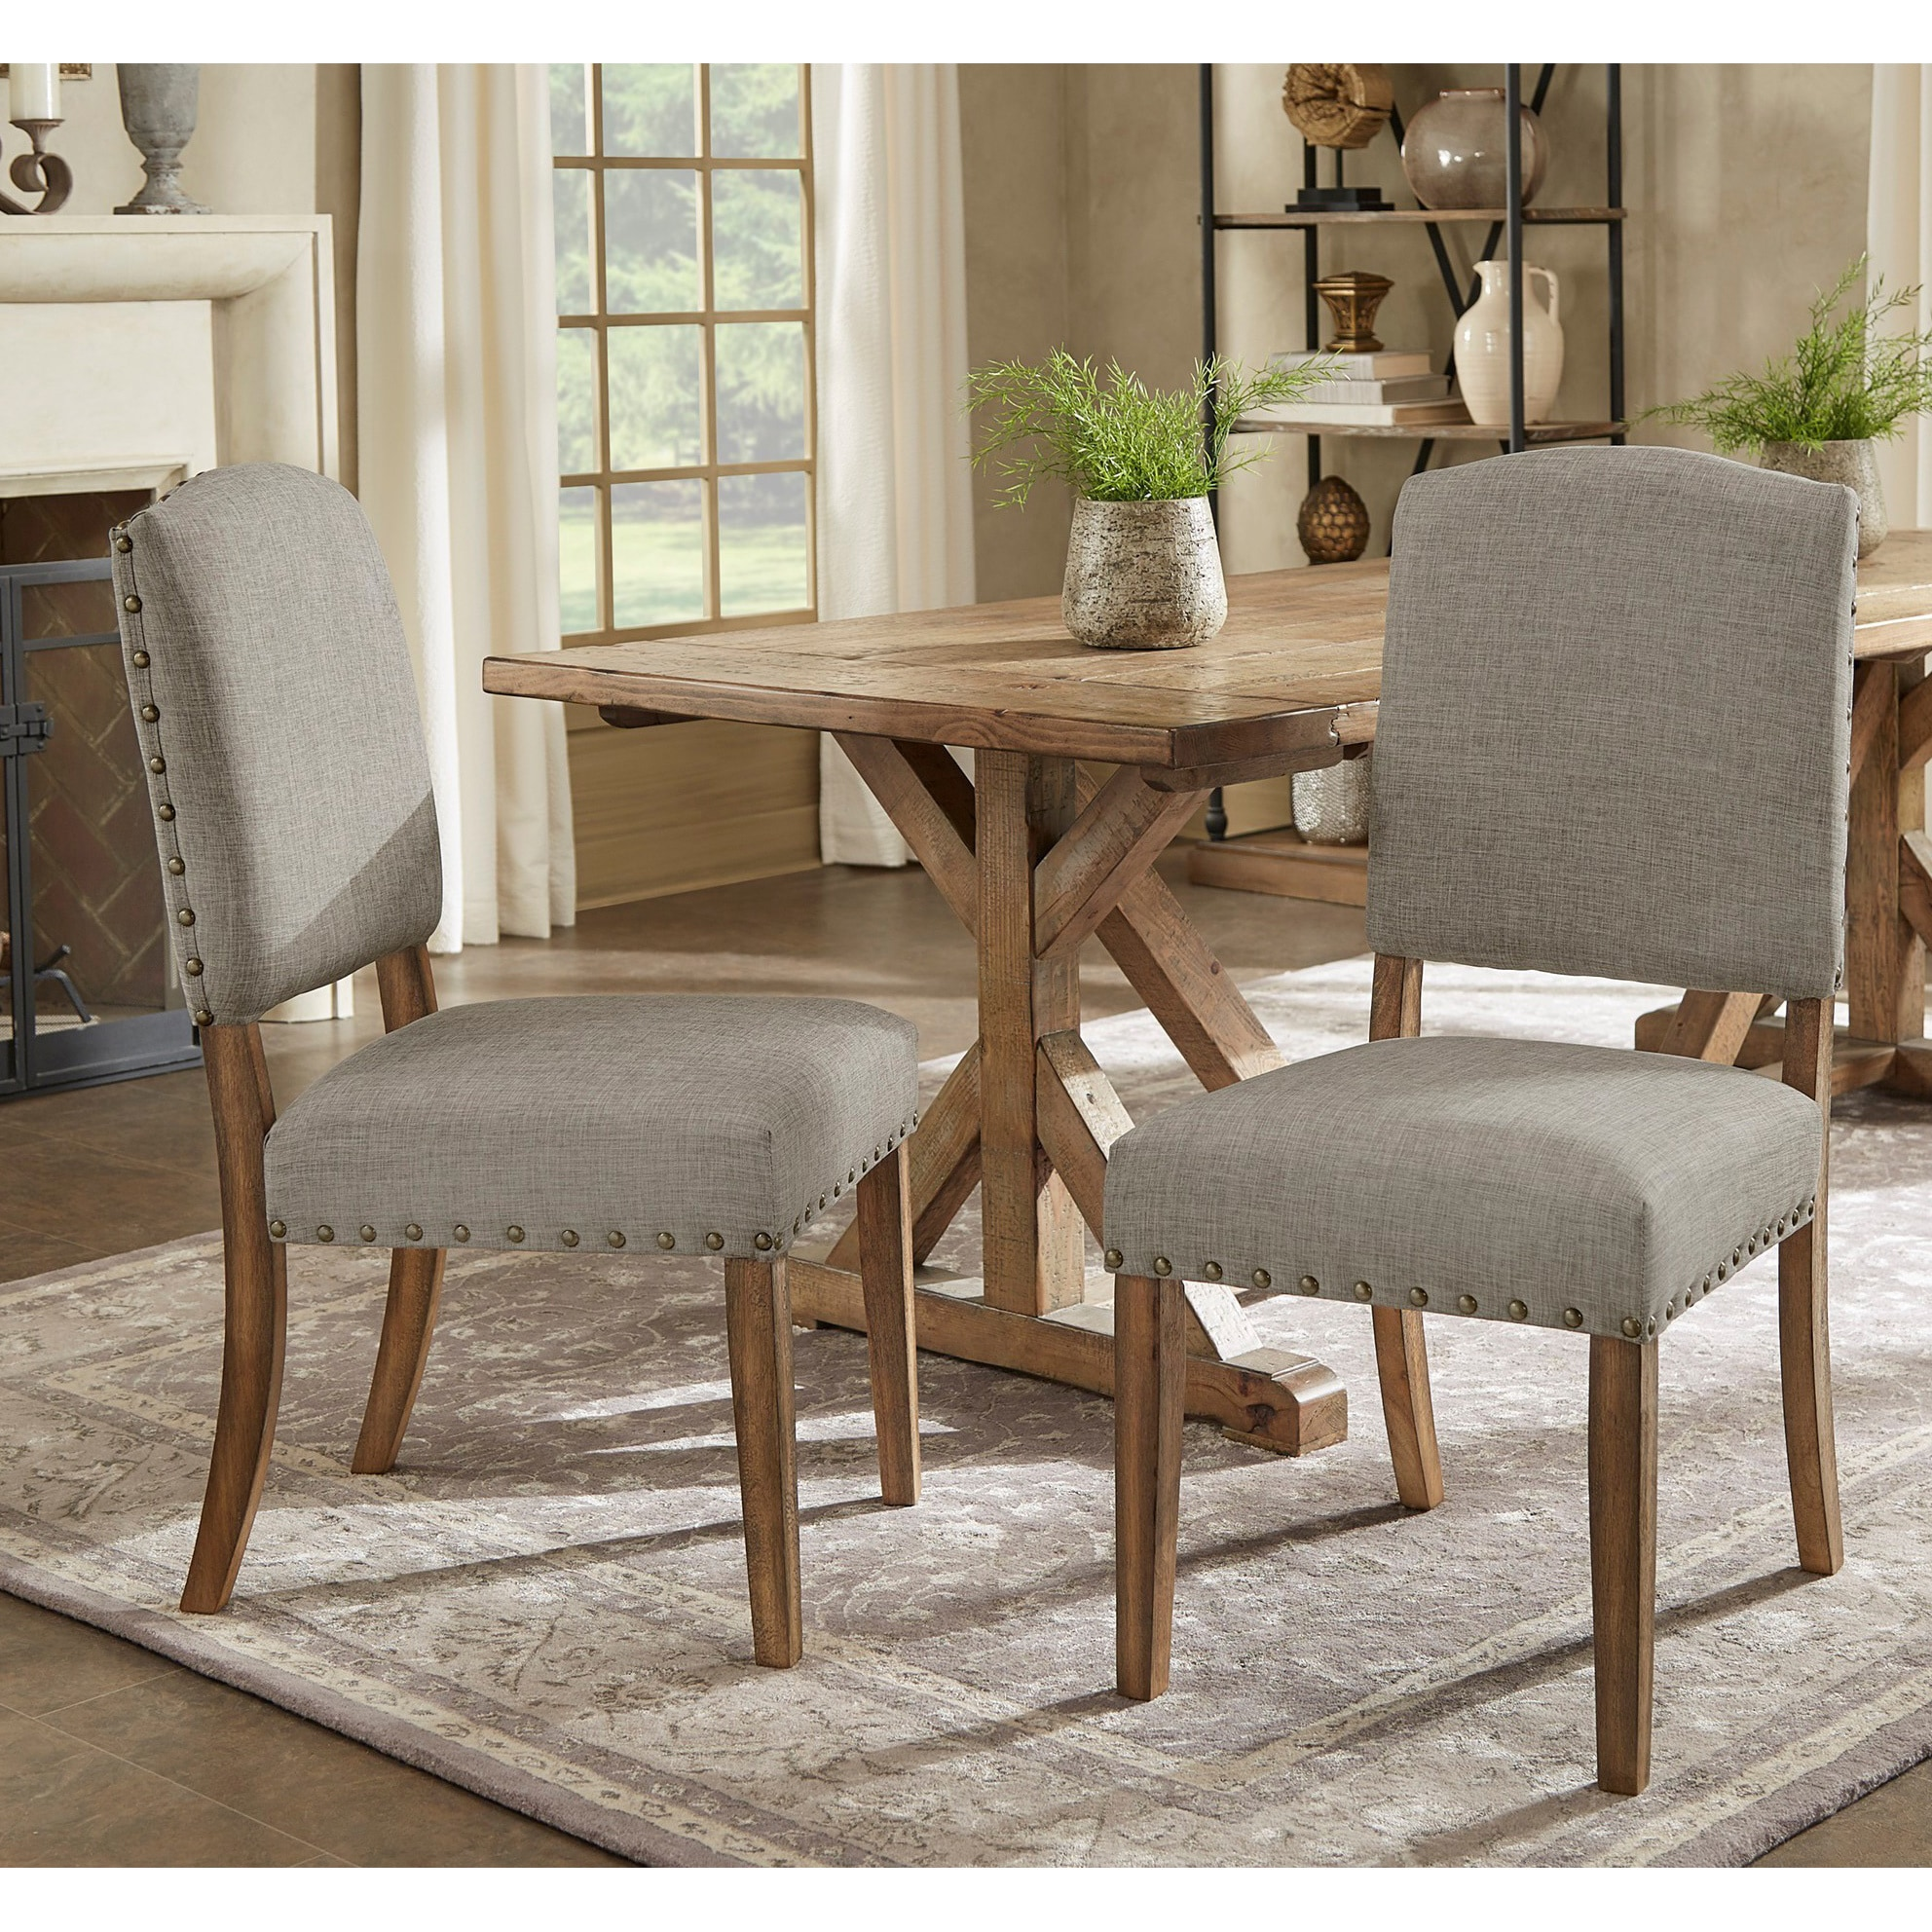 Dining Room Upholstered Chairs Benchwright Premium Nailhead Upholstered Dining Chairs Set Of 2 By Inspire Q Artisan